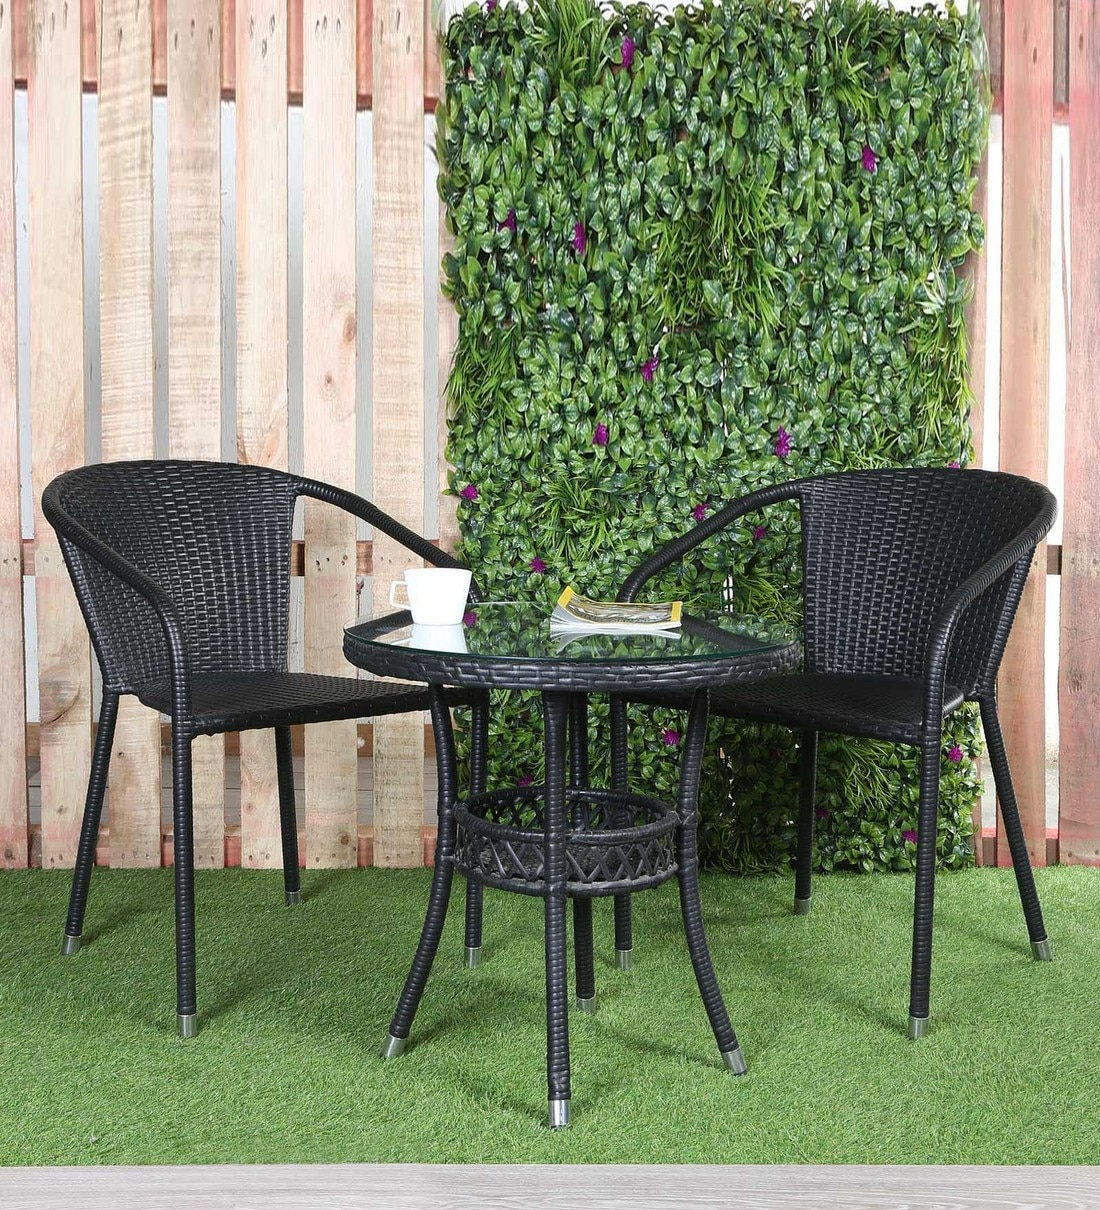 Buy Outdoor Coffee Table Set In Black Colour By Ventura Online Patio Sets Tables Furniture Pepperfry Product